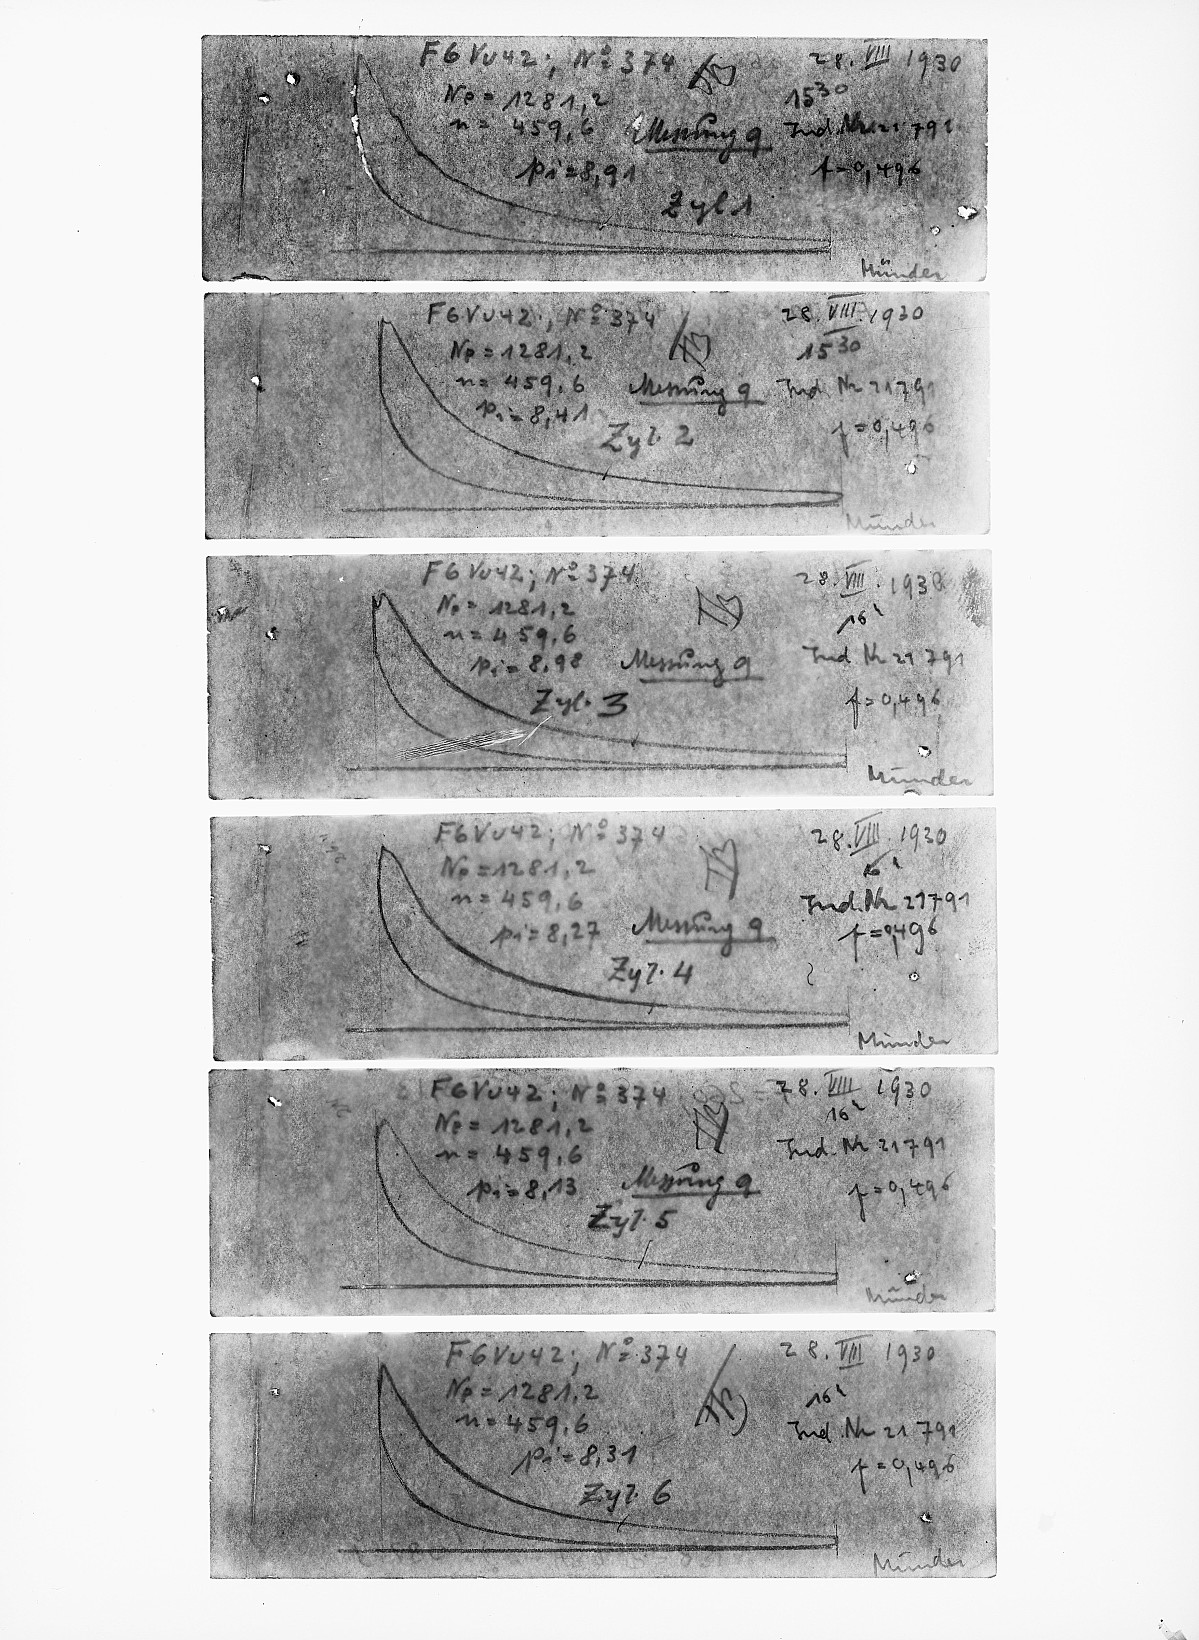 GFA 16/15189: Diagrams in the acceptance reports of GOMZY-LENINGRAD engine